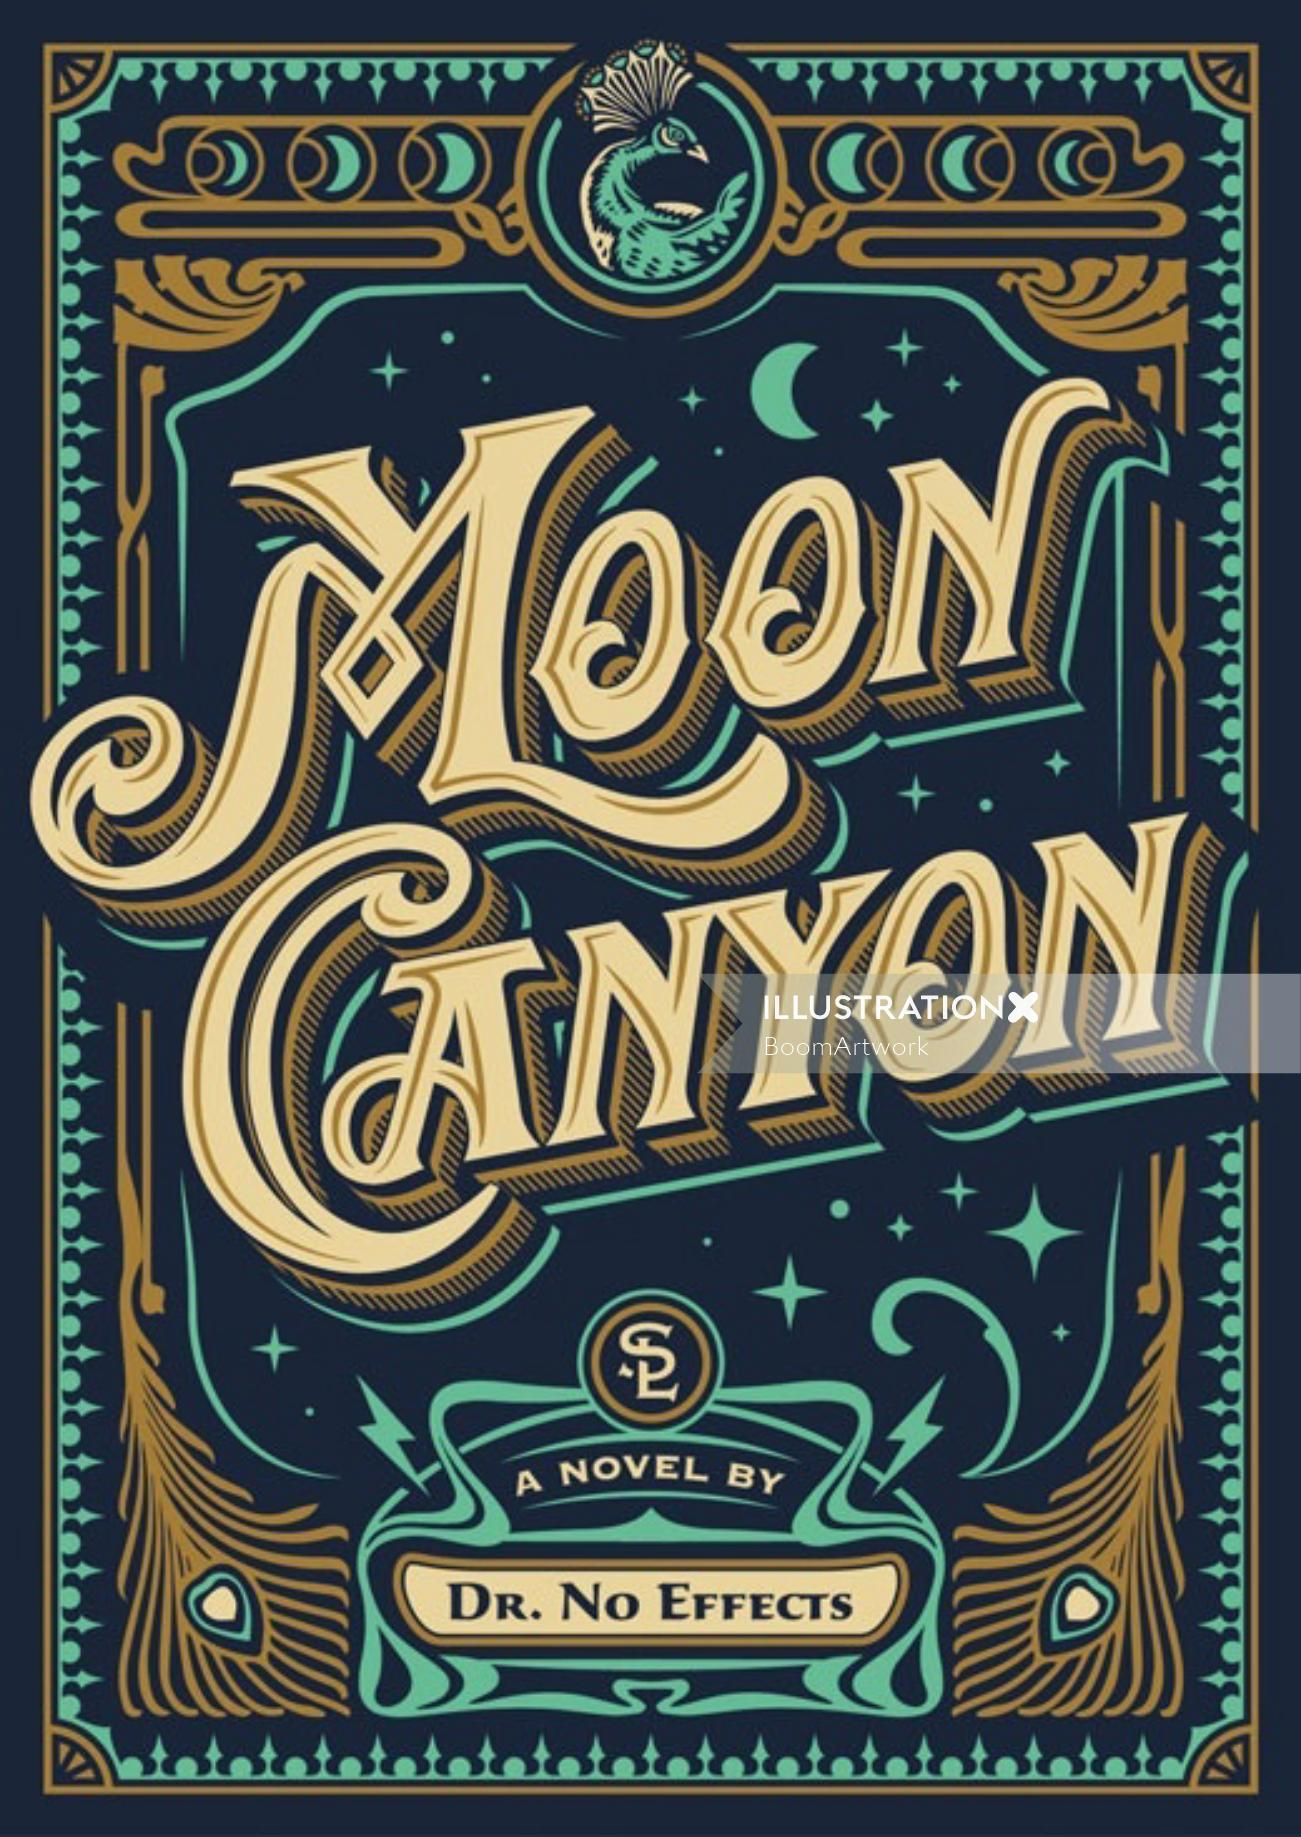 Moon Canyon Book Cover Art